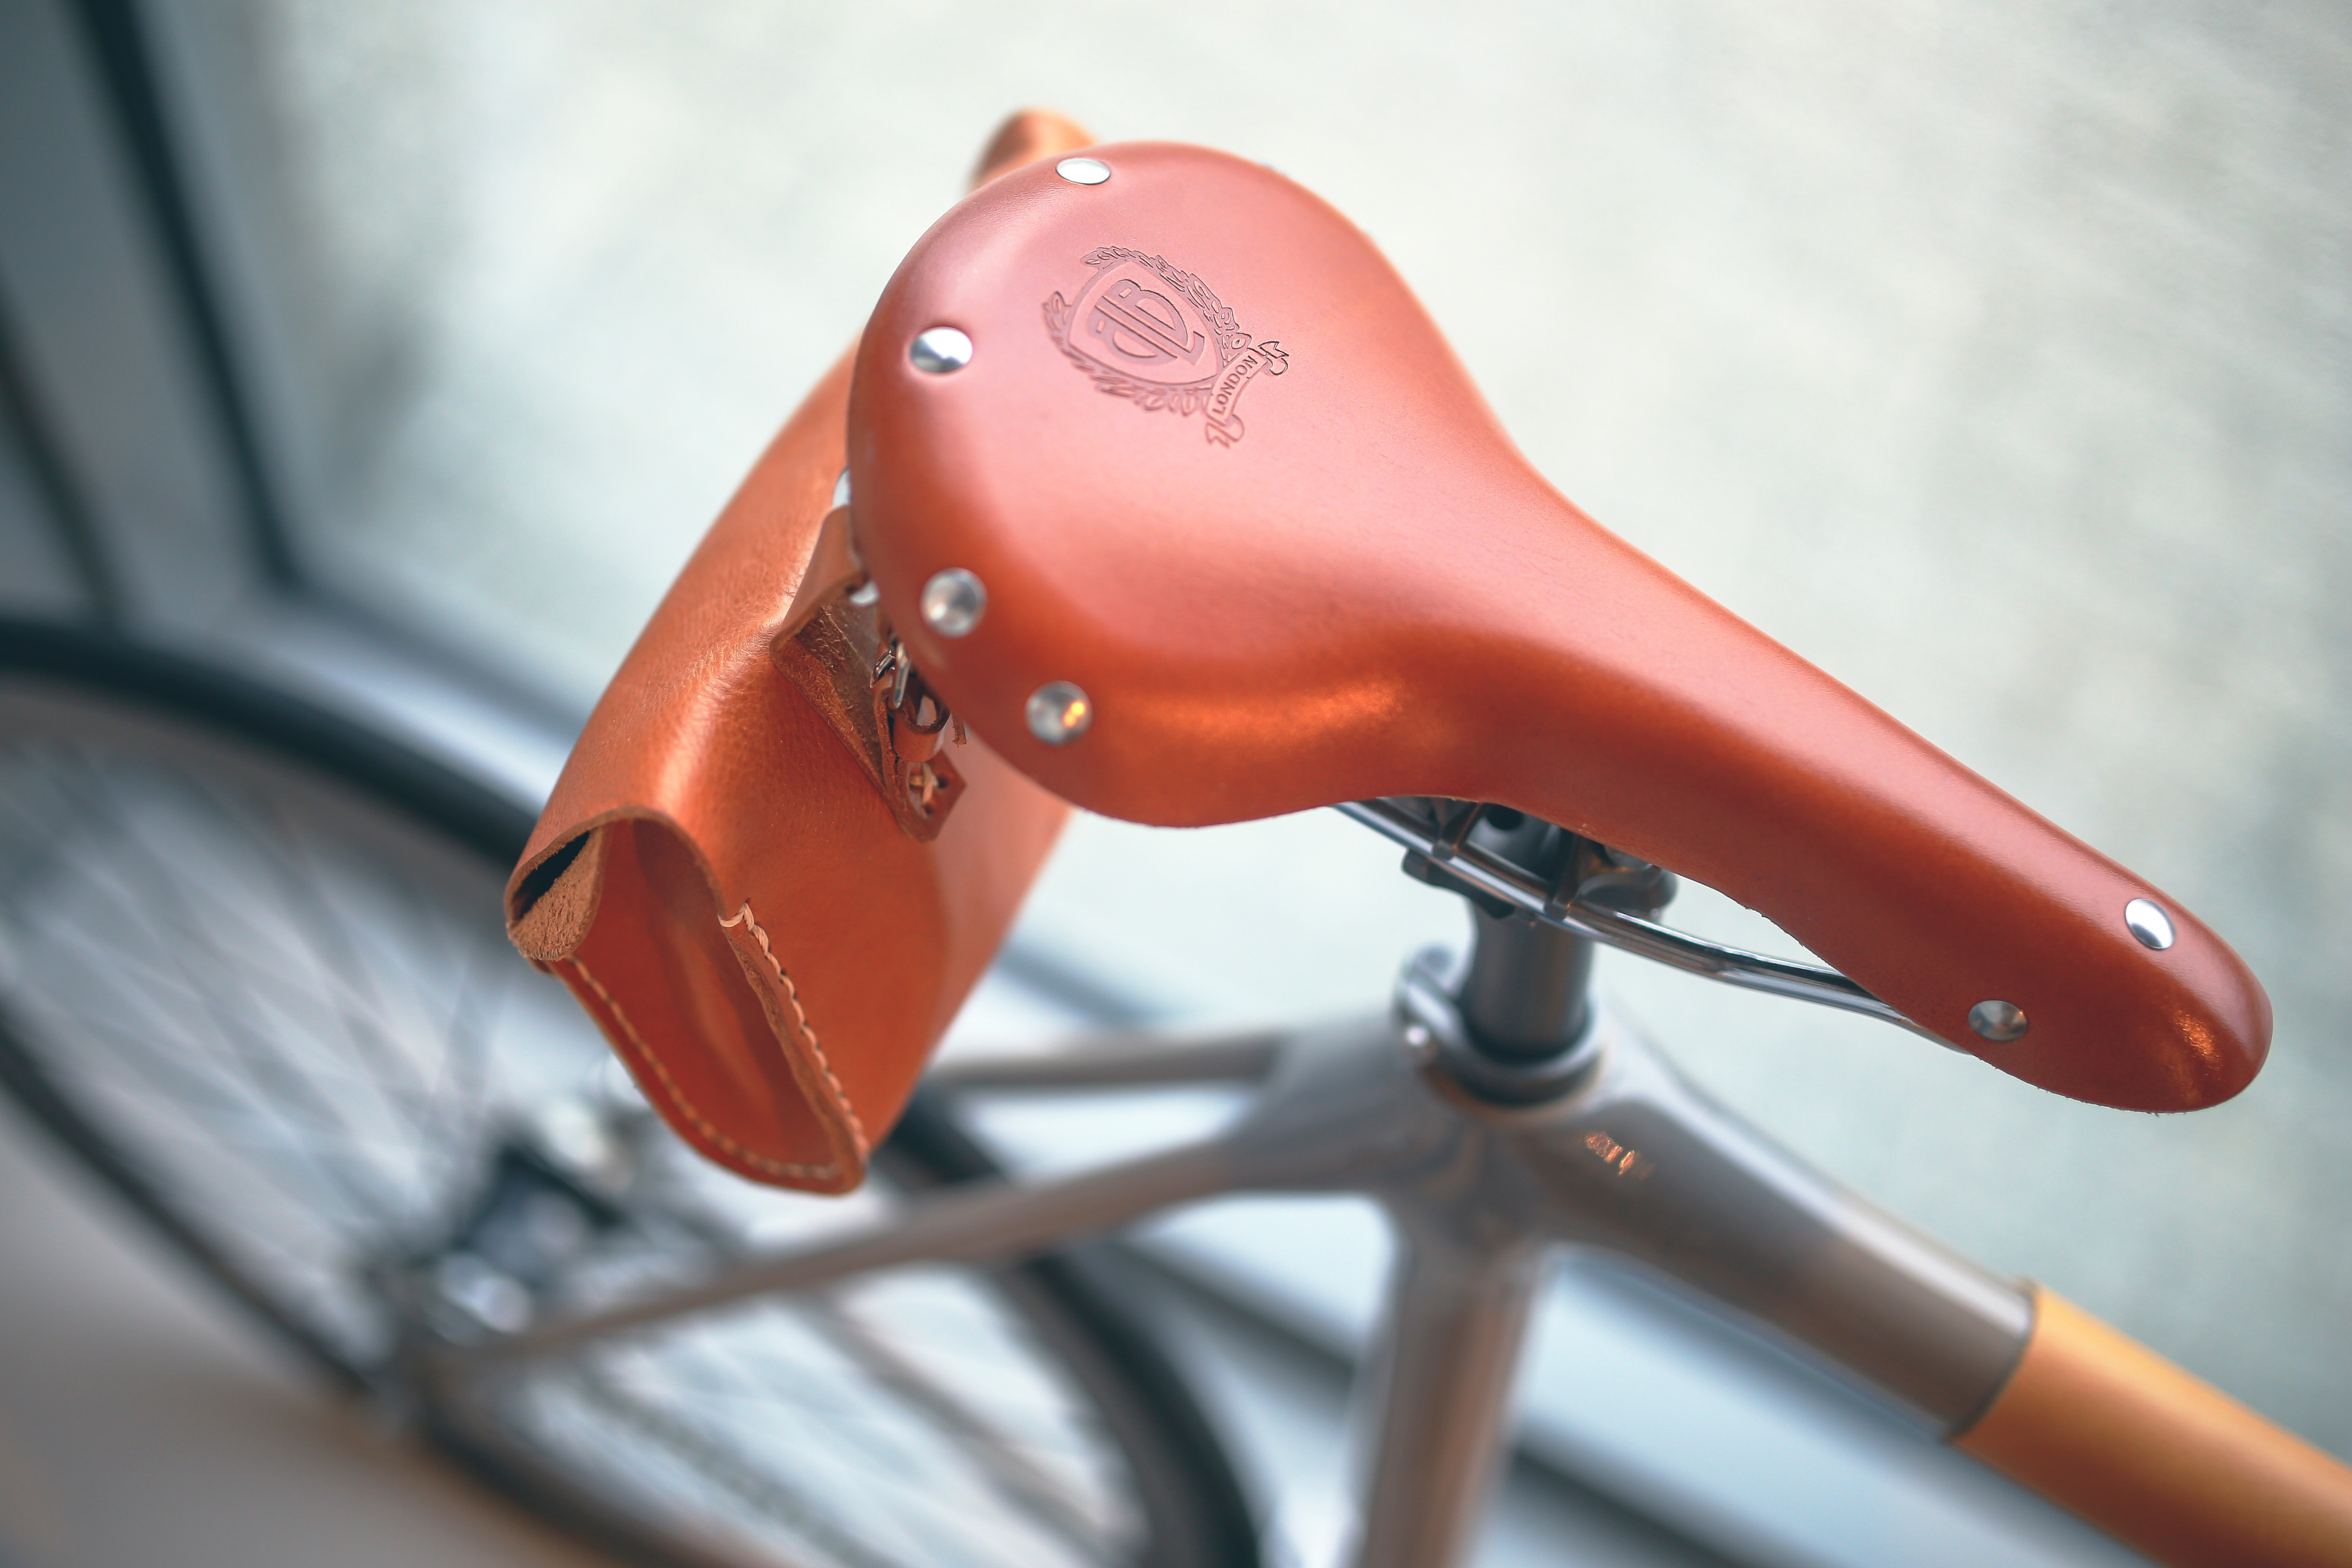 Brown leather bicycle saddle, Bicycle, Bicycle saddle, Bike, Blur, HQ Photo